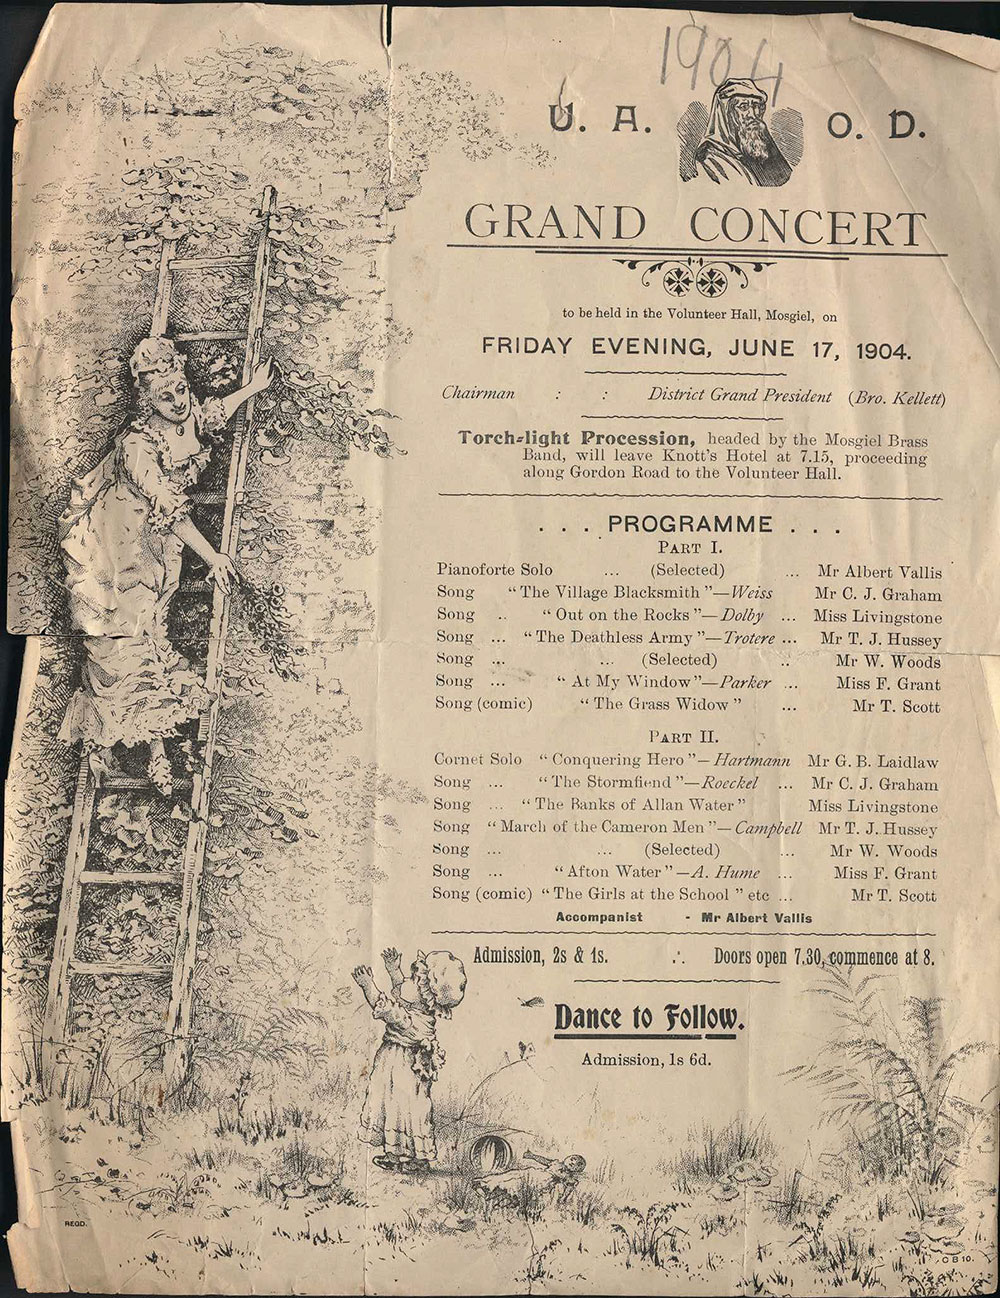 <em>U.A.O.D. grand concert</em>. (United Ancient Order of Druids). Volunteer Hall, Mosgiel, June 17, 1904.